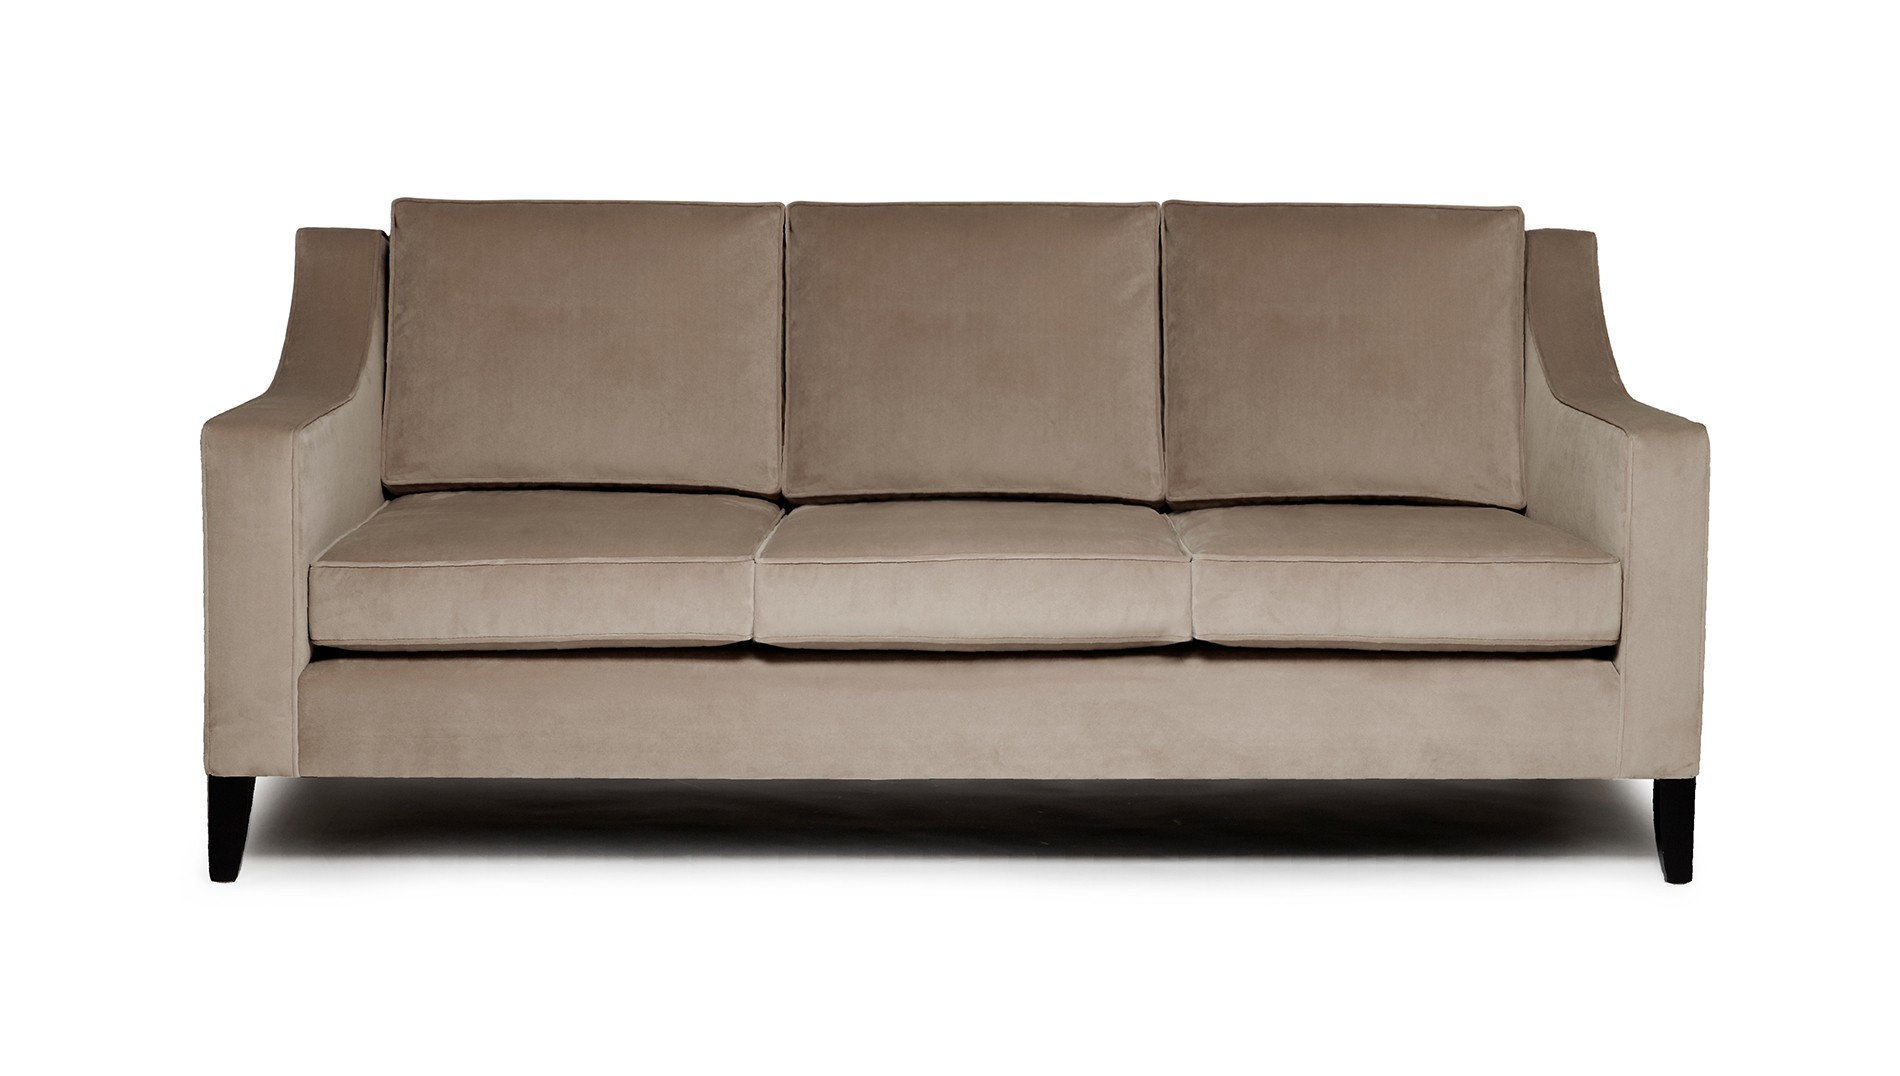 Beautiful Plaza Luxury Velvet Sofa - LuxDeco.com luxury velvet sofas